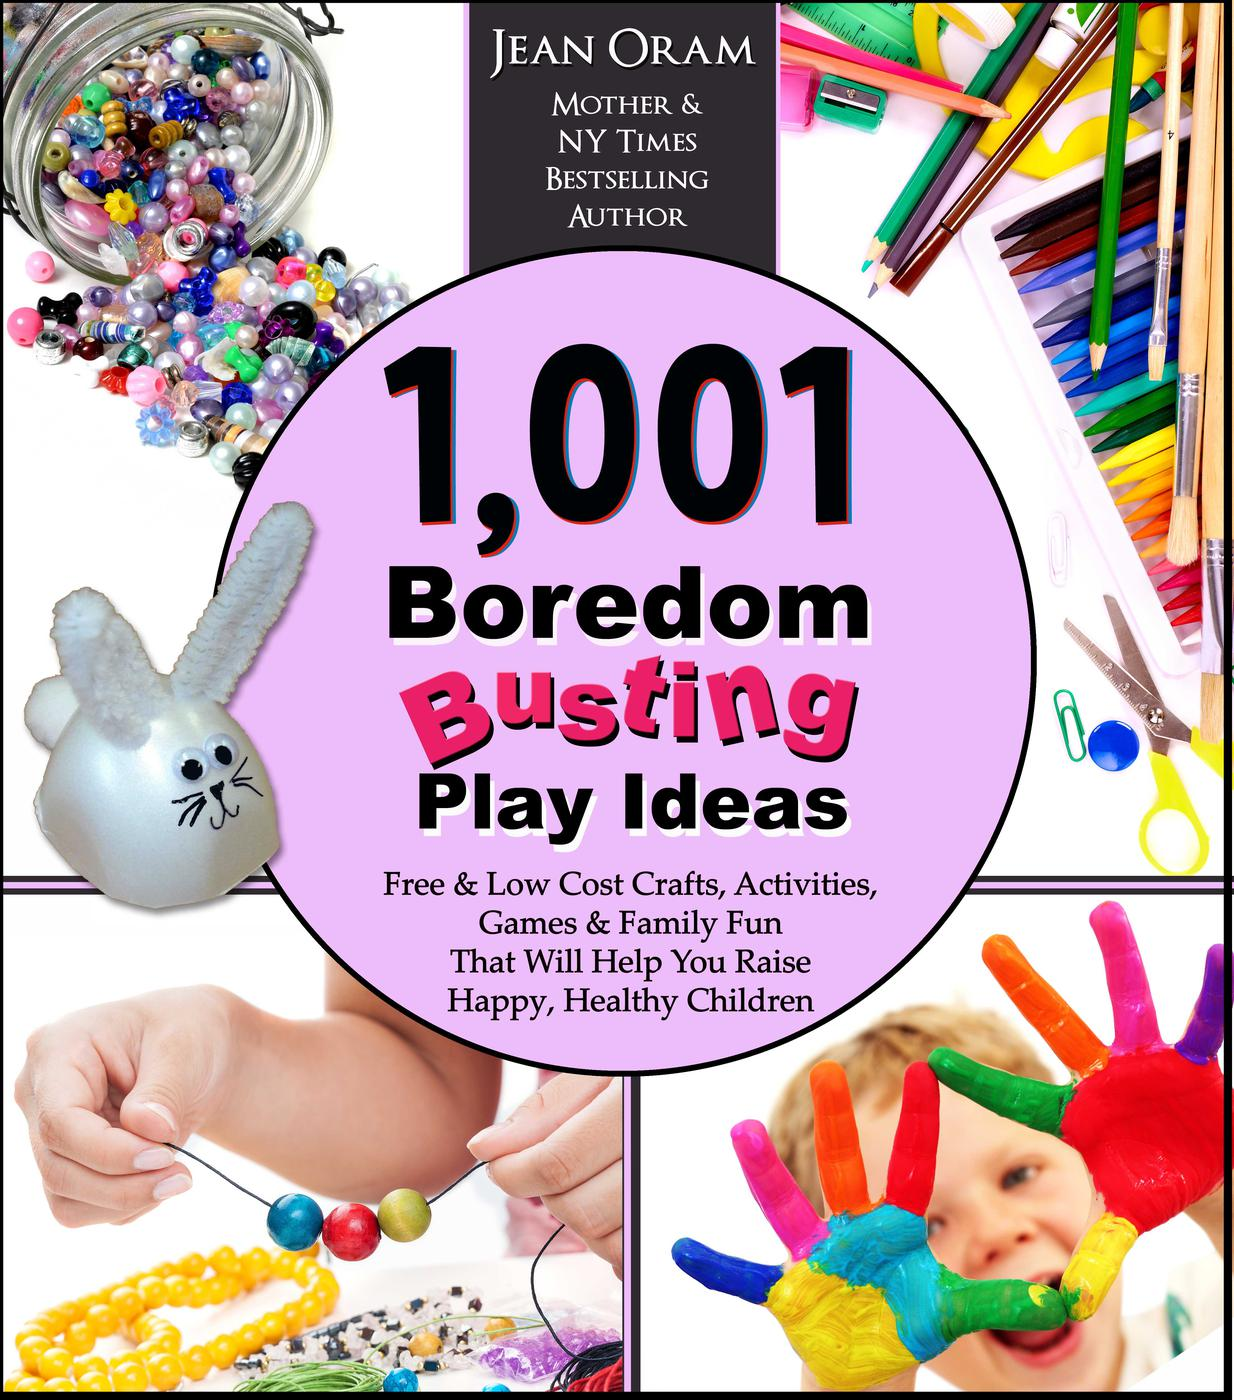 1,001 Boredom Busting Play Ideas: Free and Low Cost Activities, Crafts, Games, and Family Fun That Will Help You Raise Happy, Healthy Children (It's All Kid's Play)